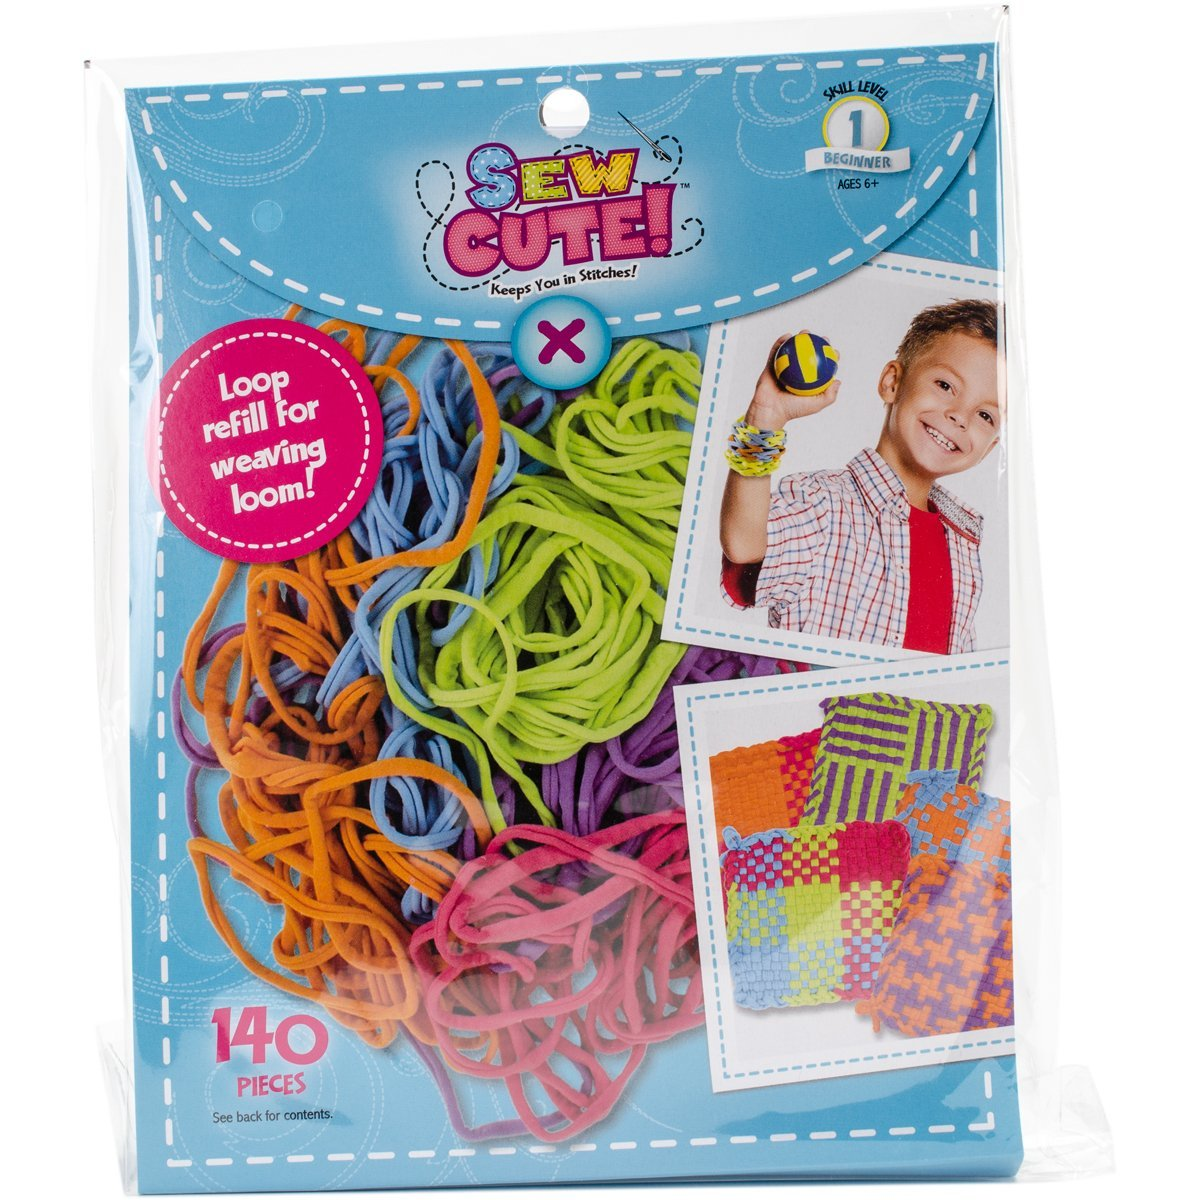 Sew Cute! Loom Loop Refill Kit-Bright Colorbok 335488